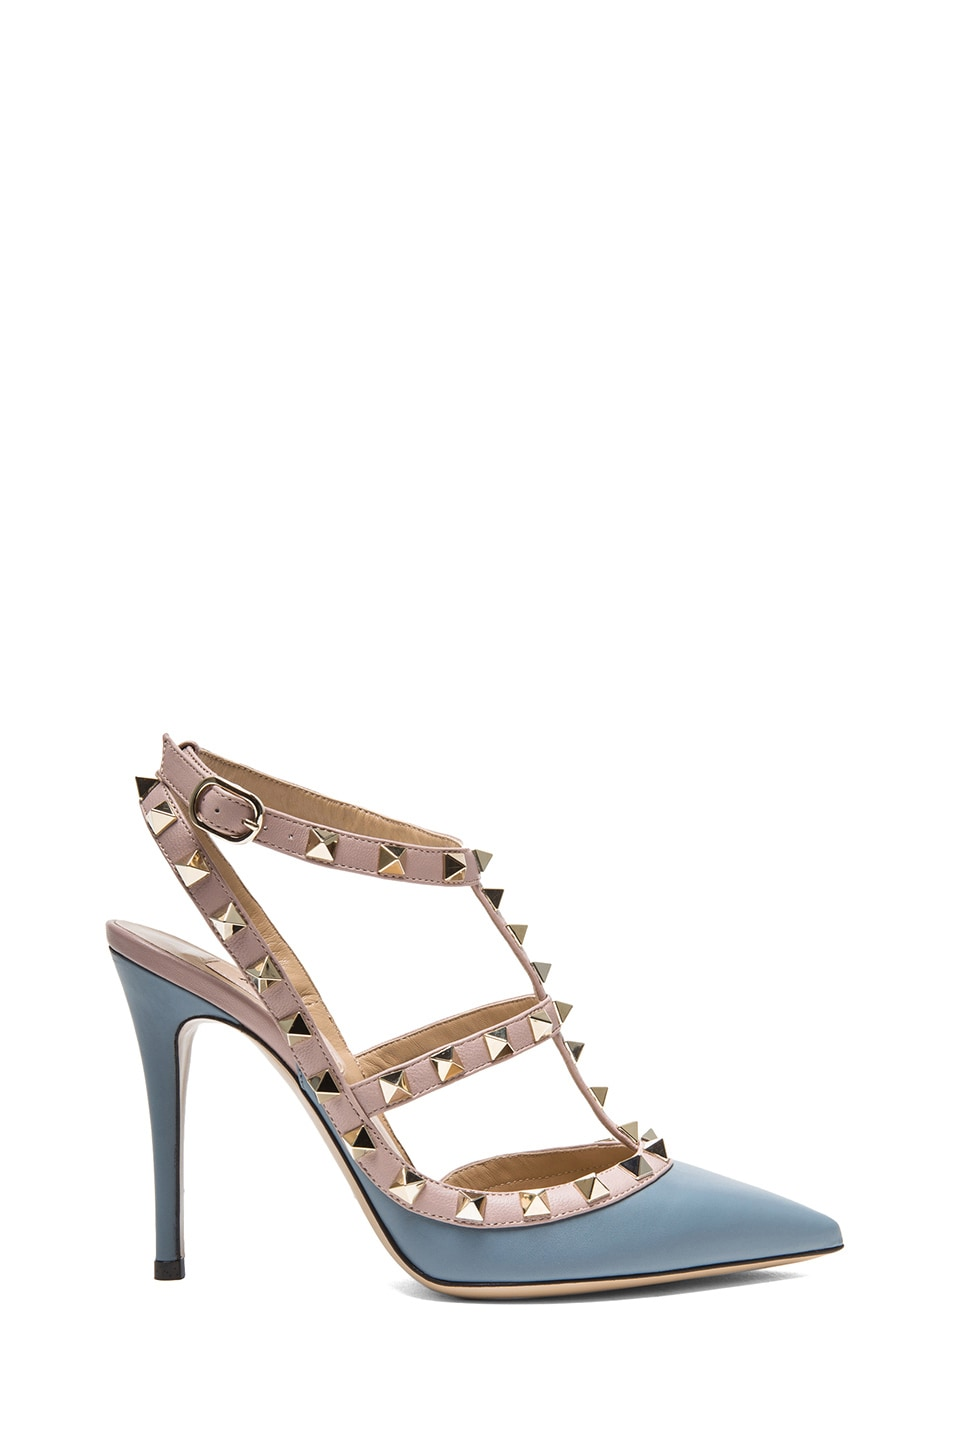 Image 1 of Valentino Rockstud Leather Slingbacks T.100 in Grey